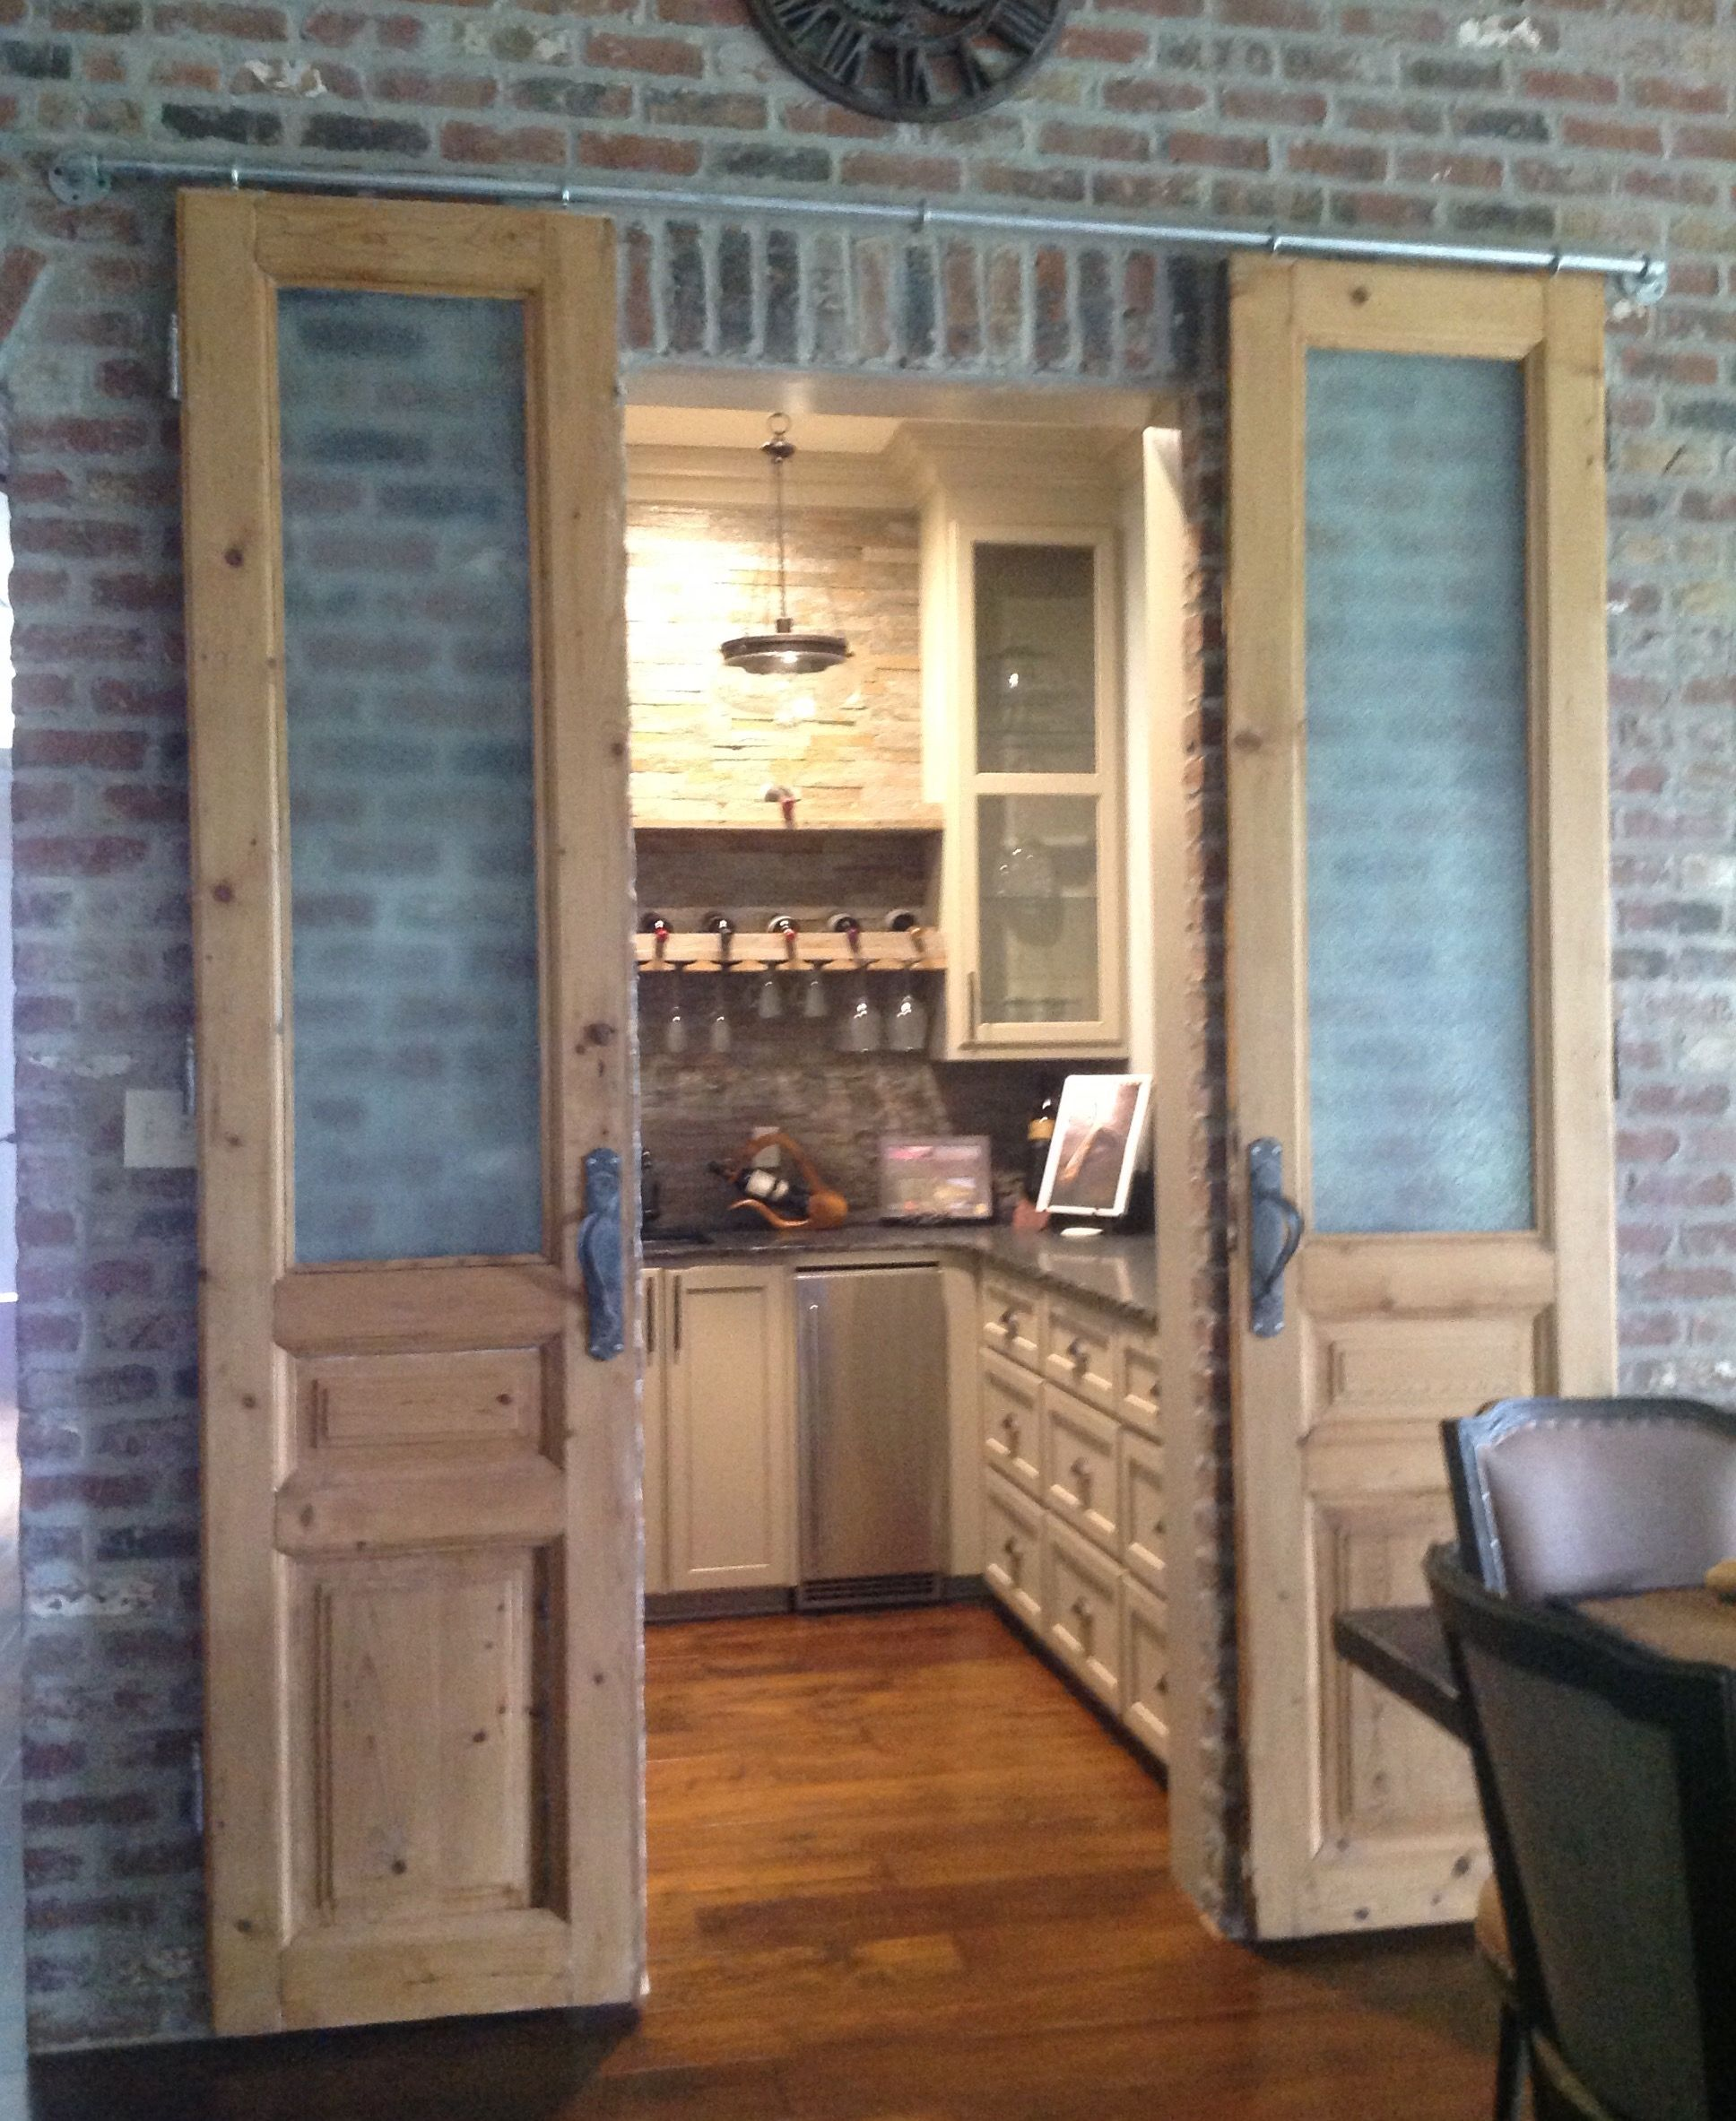 Antique doors into our butlers pantry with our DIY barn door sliding hardware. & Antique doors into our butlers pantry with our DIY barn door ... pezcame.com